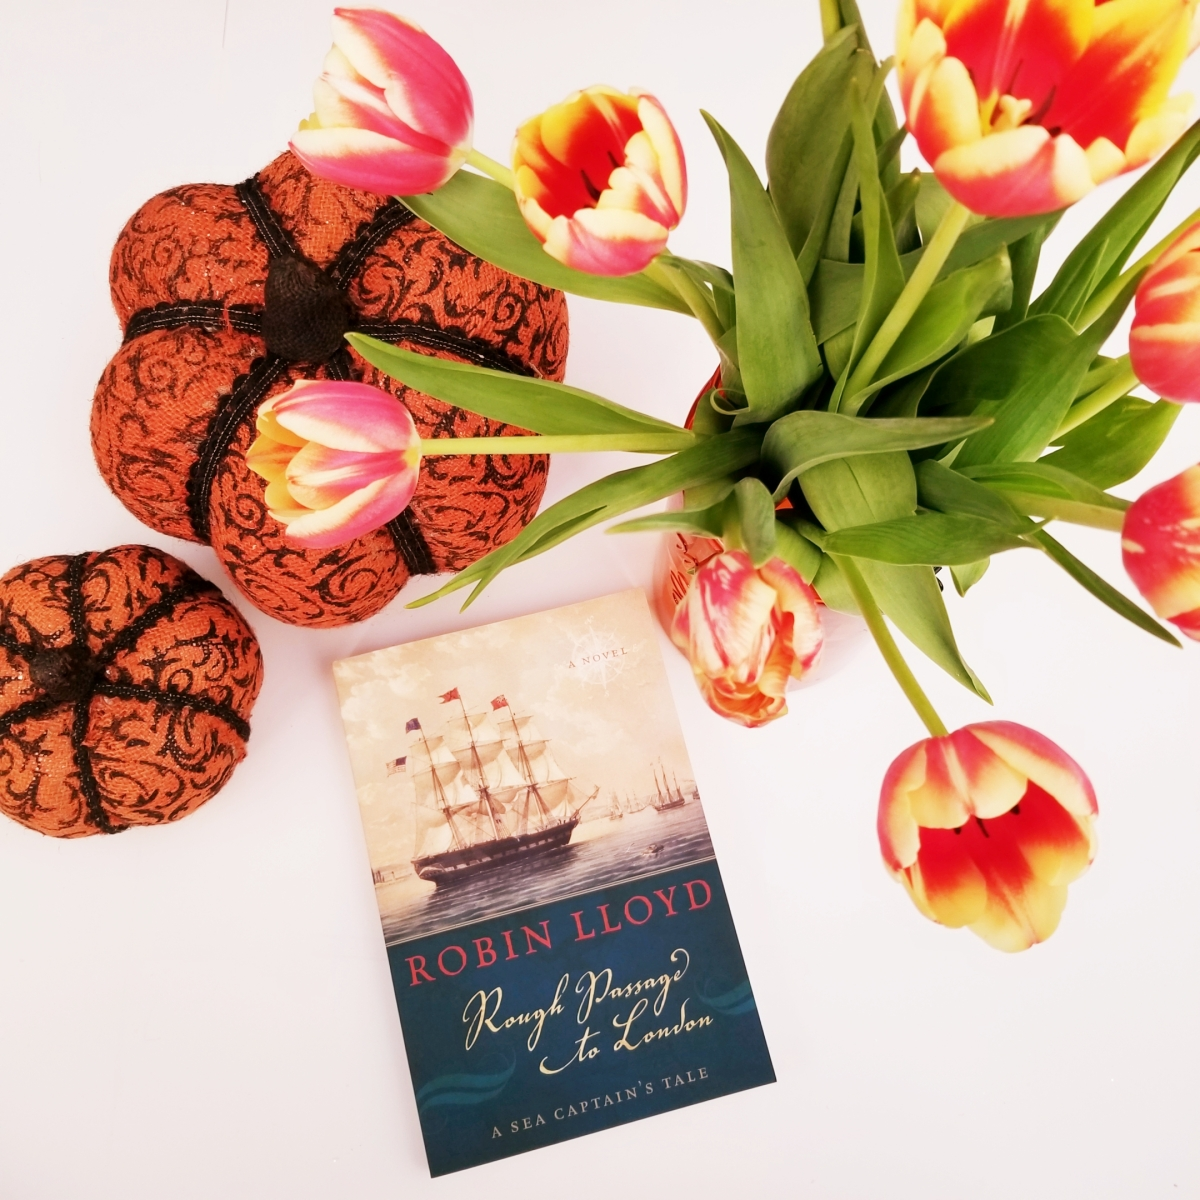 Rough Passage to London by Robin Lloyd #bookreview #tarheelreader #thrroughpassage #robinlloyd @lyons_press @suzyapproved  @annmarienieves #blogtour #roughpassagetolondon